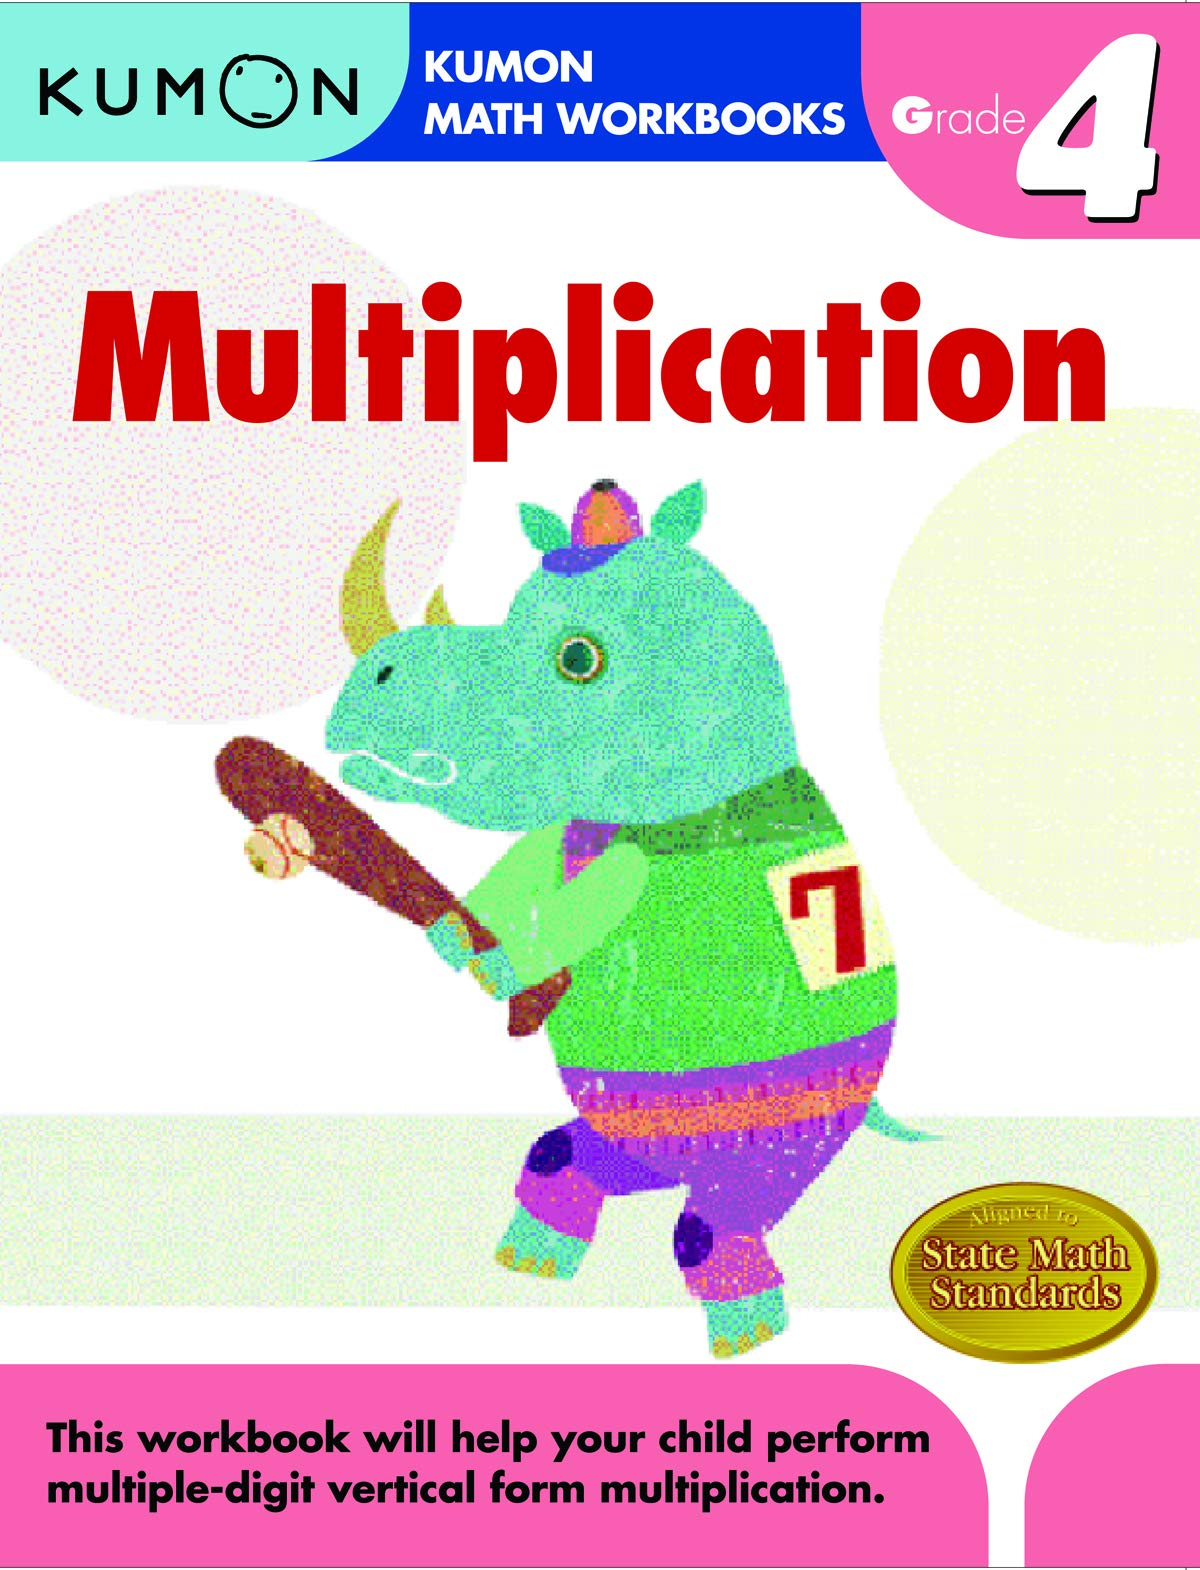 Buy Grade 4 Multiplication Kumon Math Workbooks Book Online At Low Prices In India Grade 4 Multiplication Kumon Math Workbooks Reviews Ratings Amazon In [ 1570 x 1200 Pixel ]